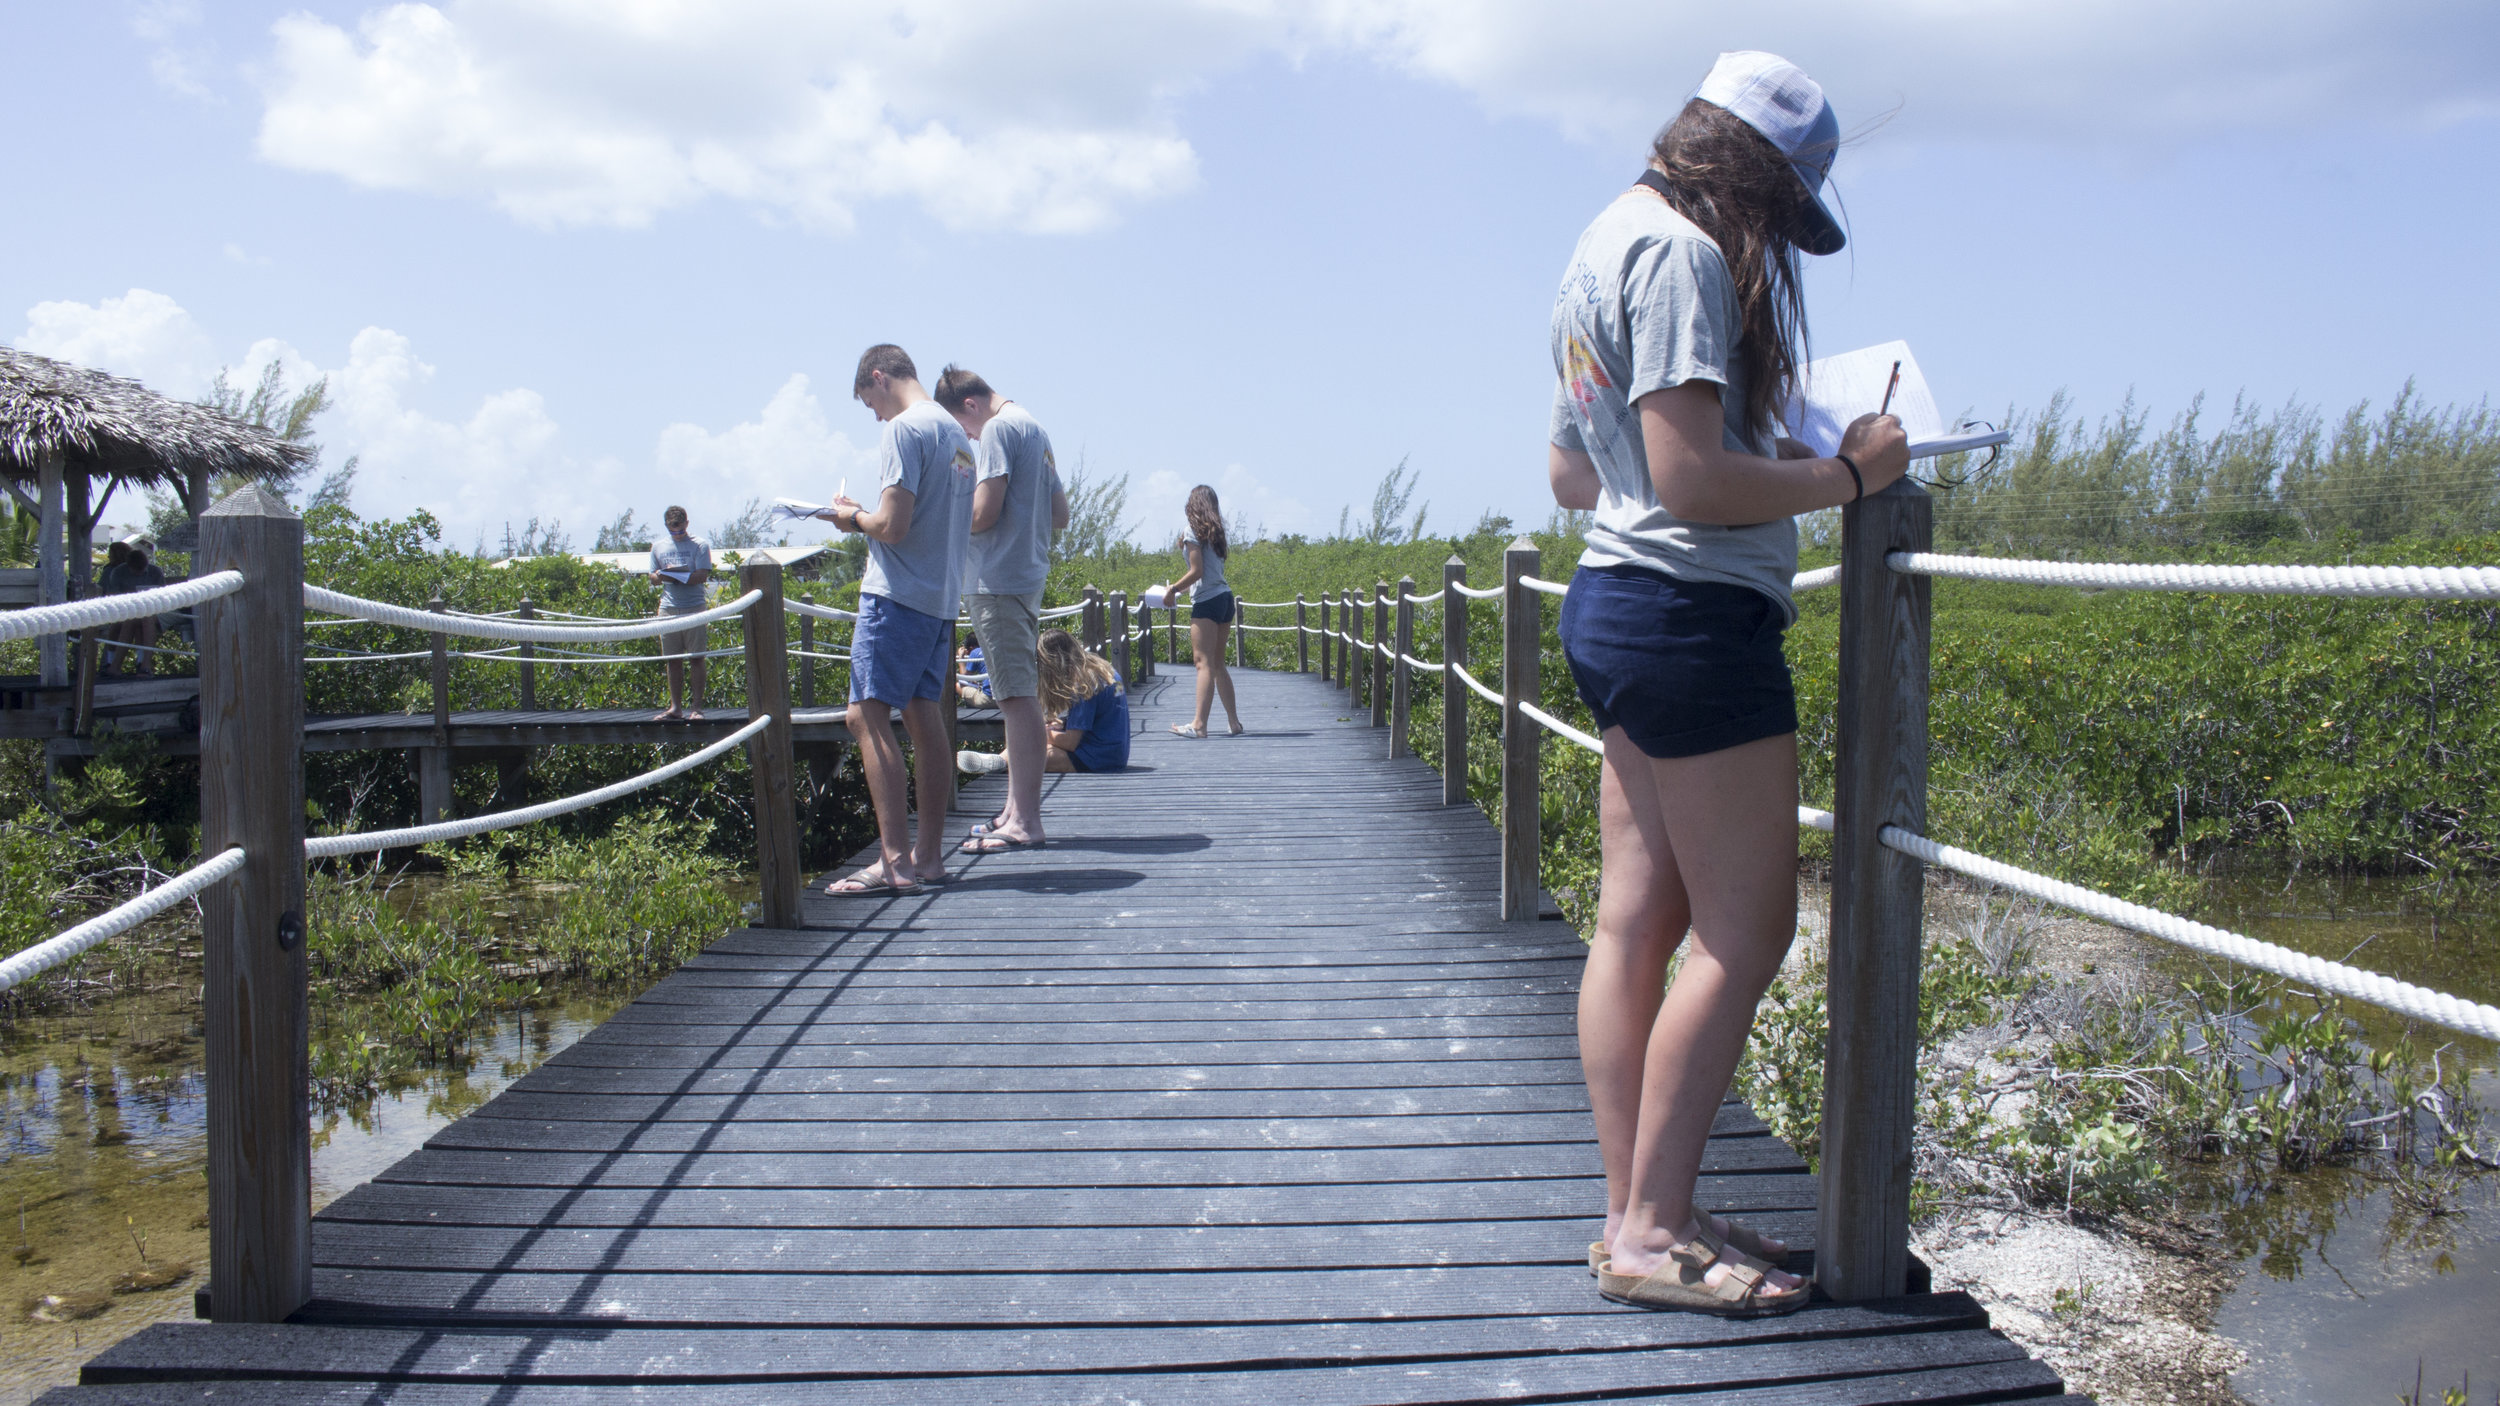 While learning about mangroves, students take a short walk over to the campus' mangrove forest, where they study the benefits of mangrove ecosystems and make observations.